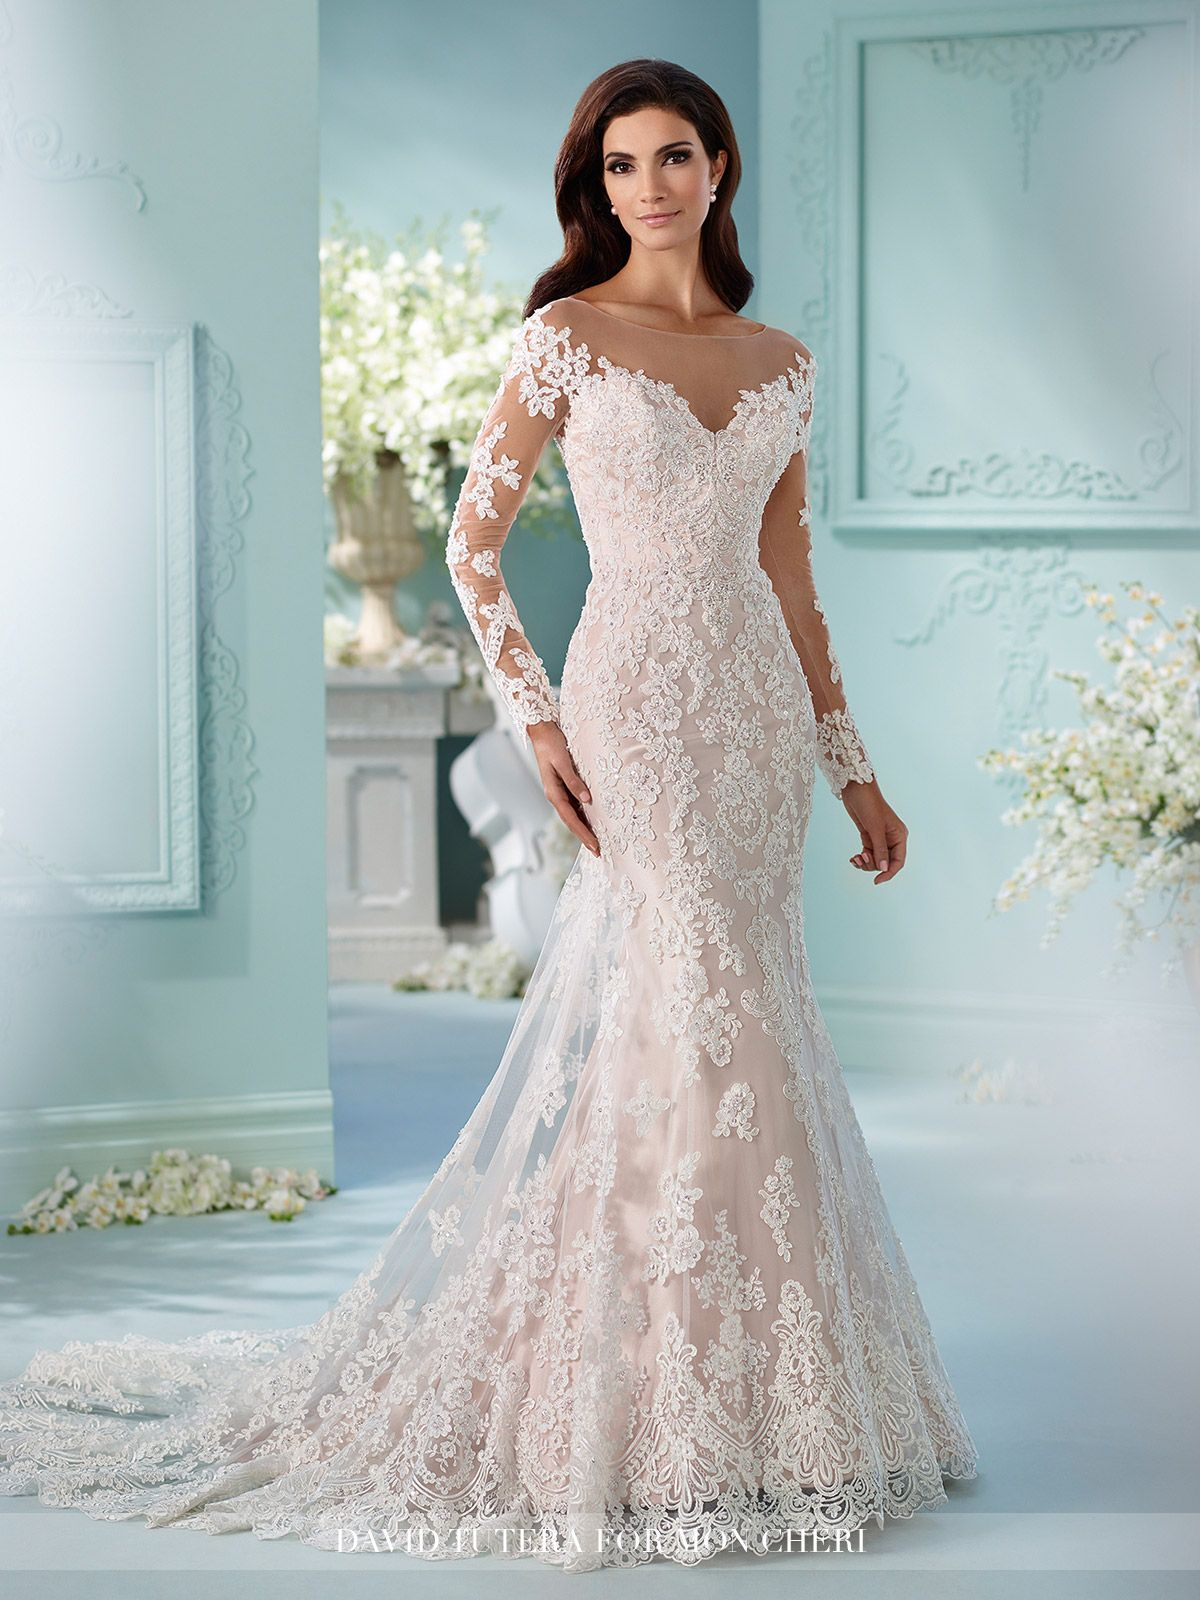 Vestidos De Noiva com manga 2014 Long Sleeve Lace Wedding Dress ...